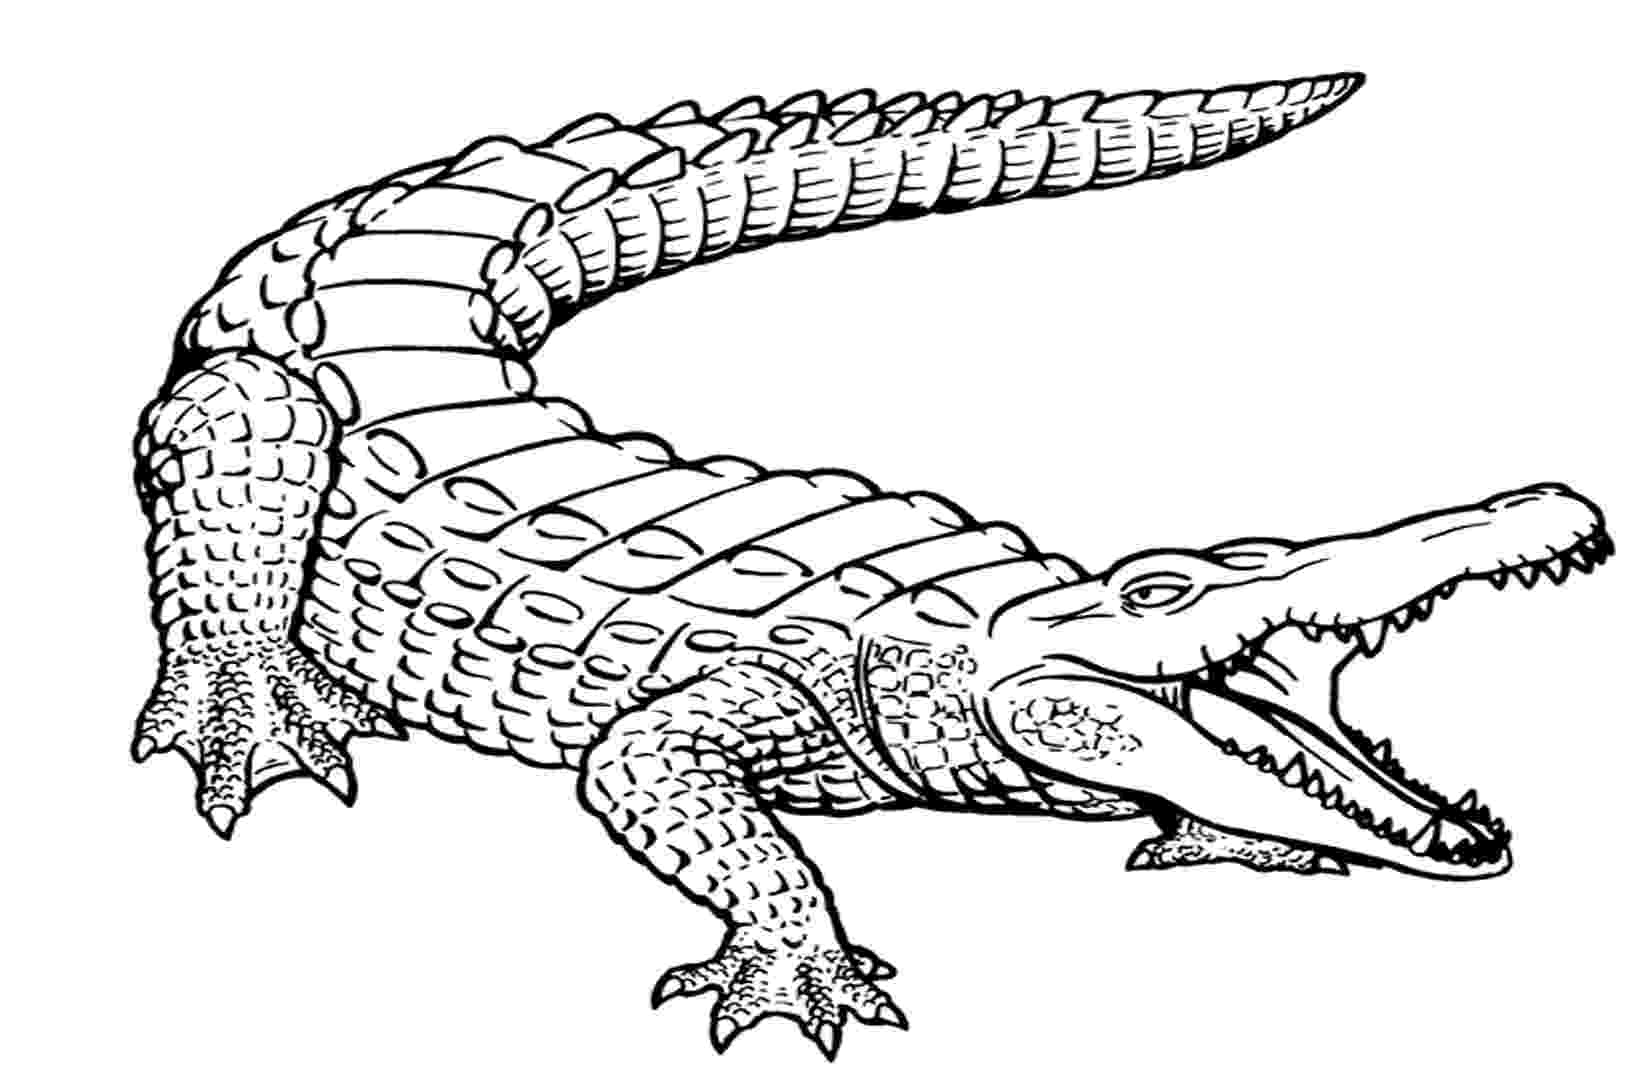 aligator coloring pages free printable alligator coloring pages for kids cool2bkids pages coloring aligator